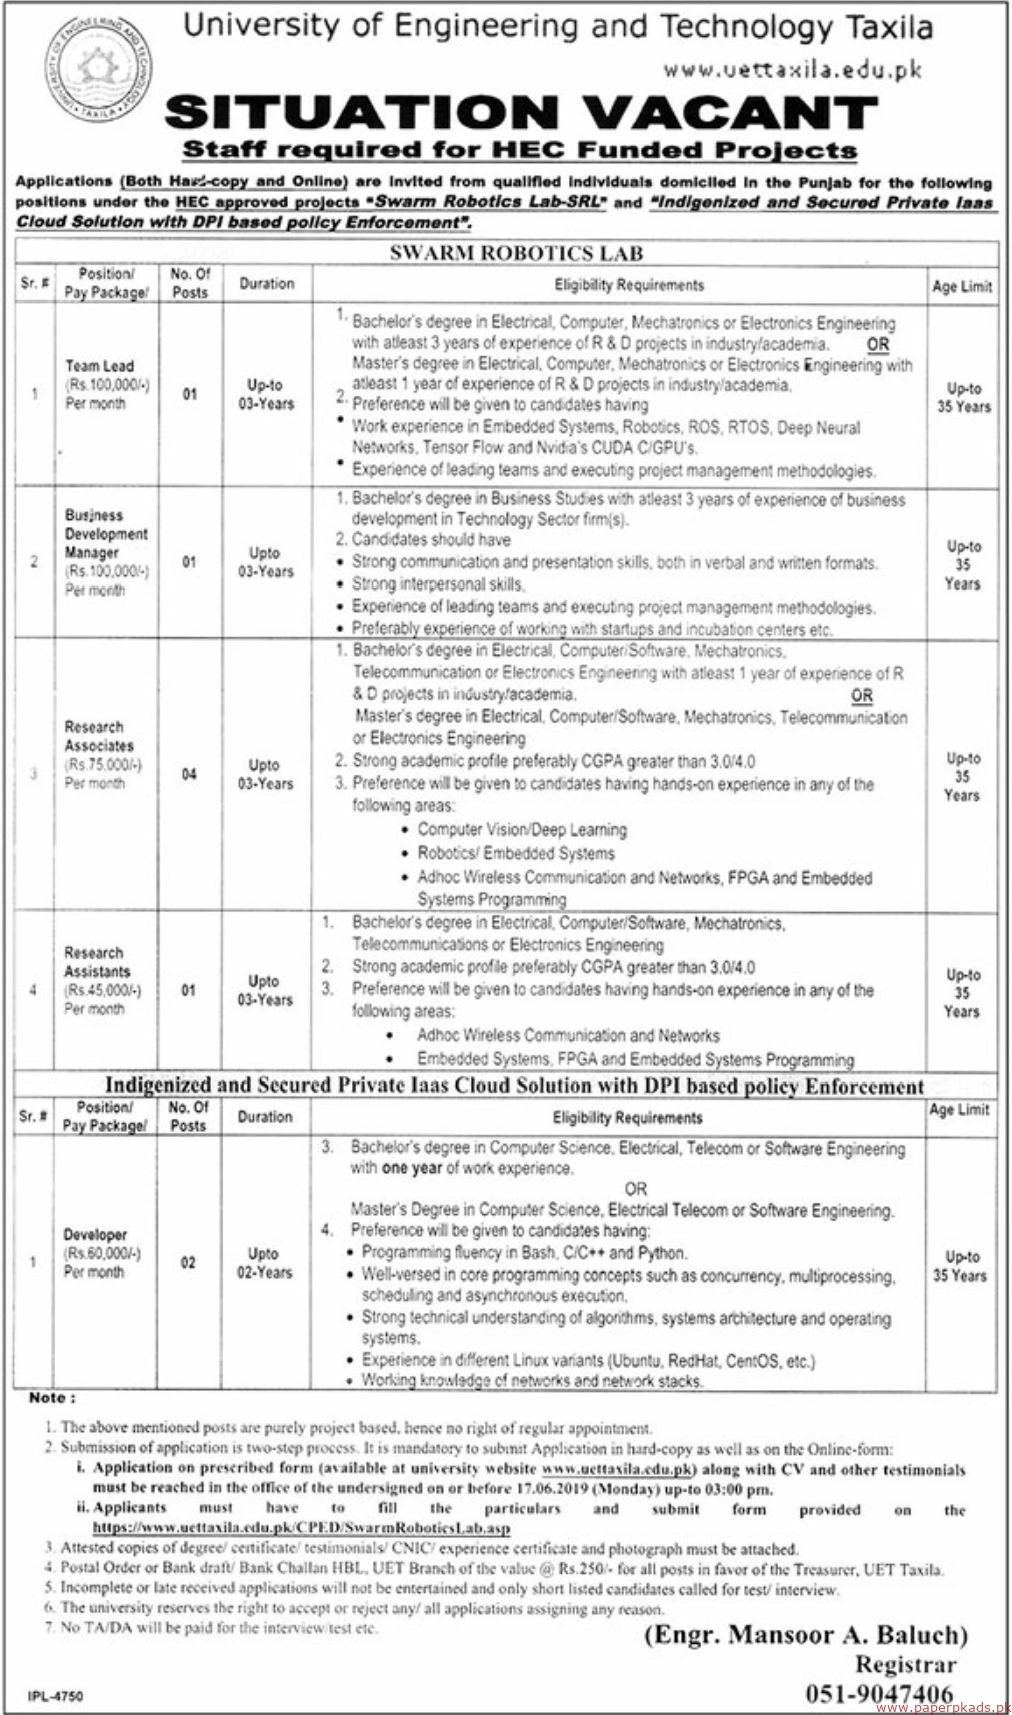 University of Engineering and Technology Taxila Jobs 2019 Latest